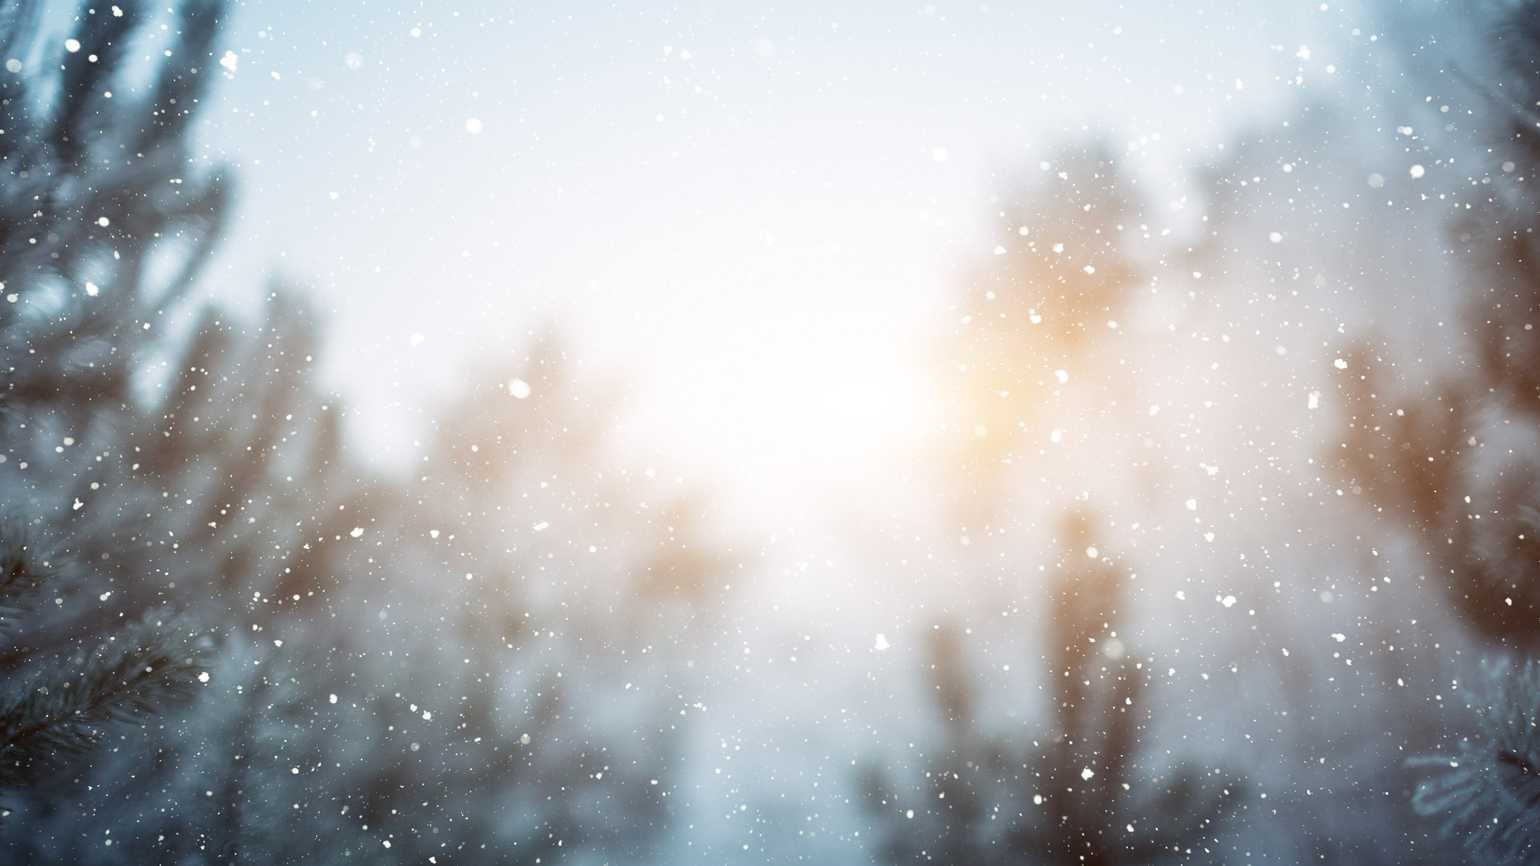 A wintery background with a flurry of snowflakes.